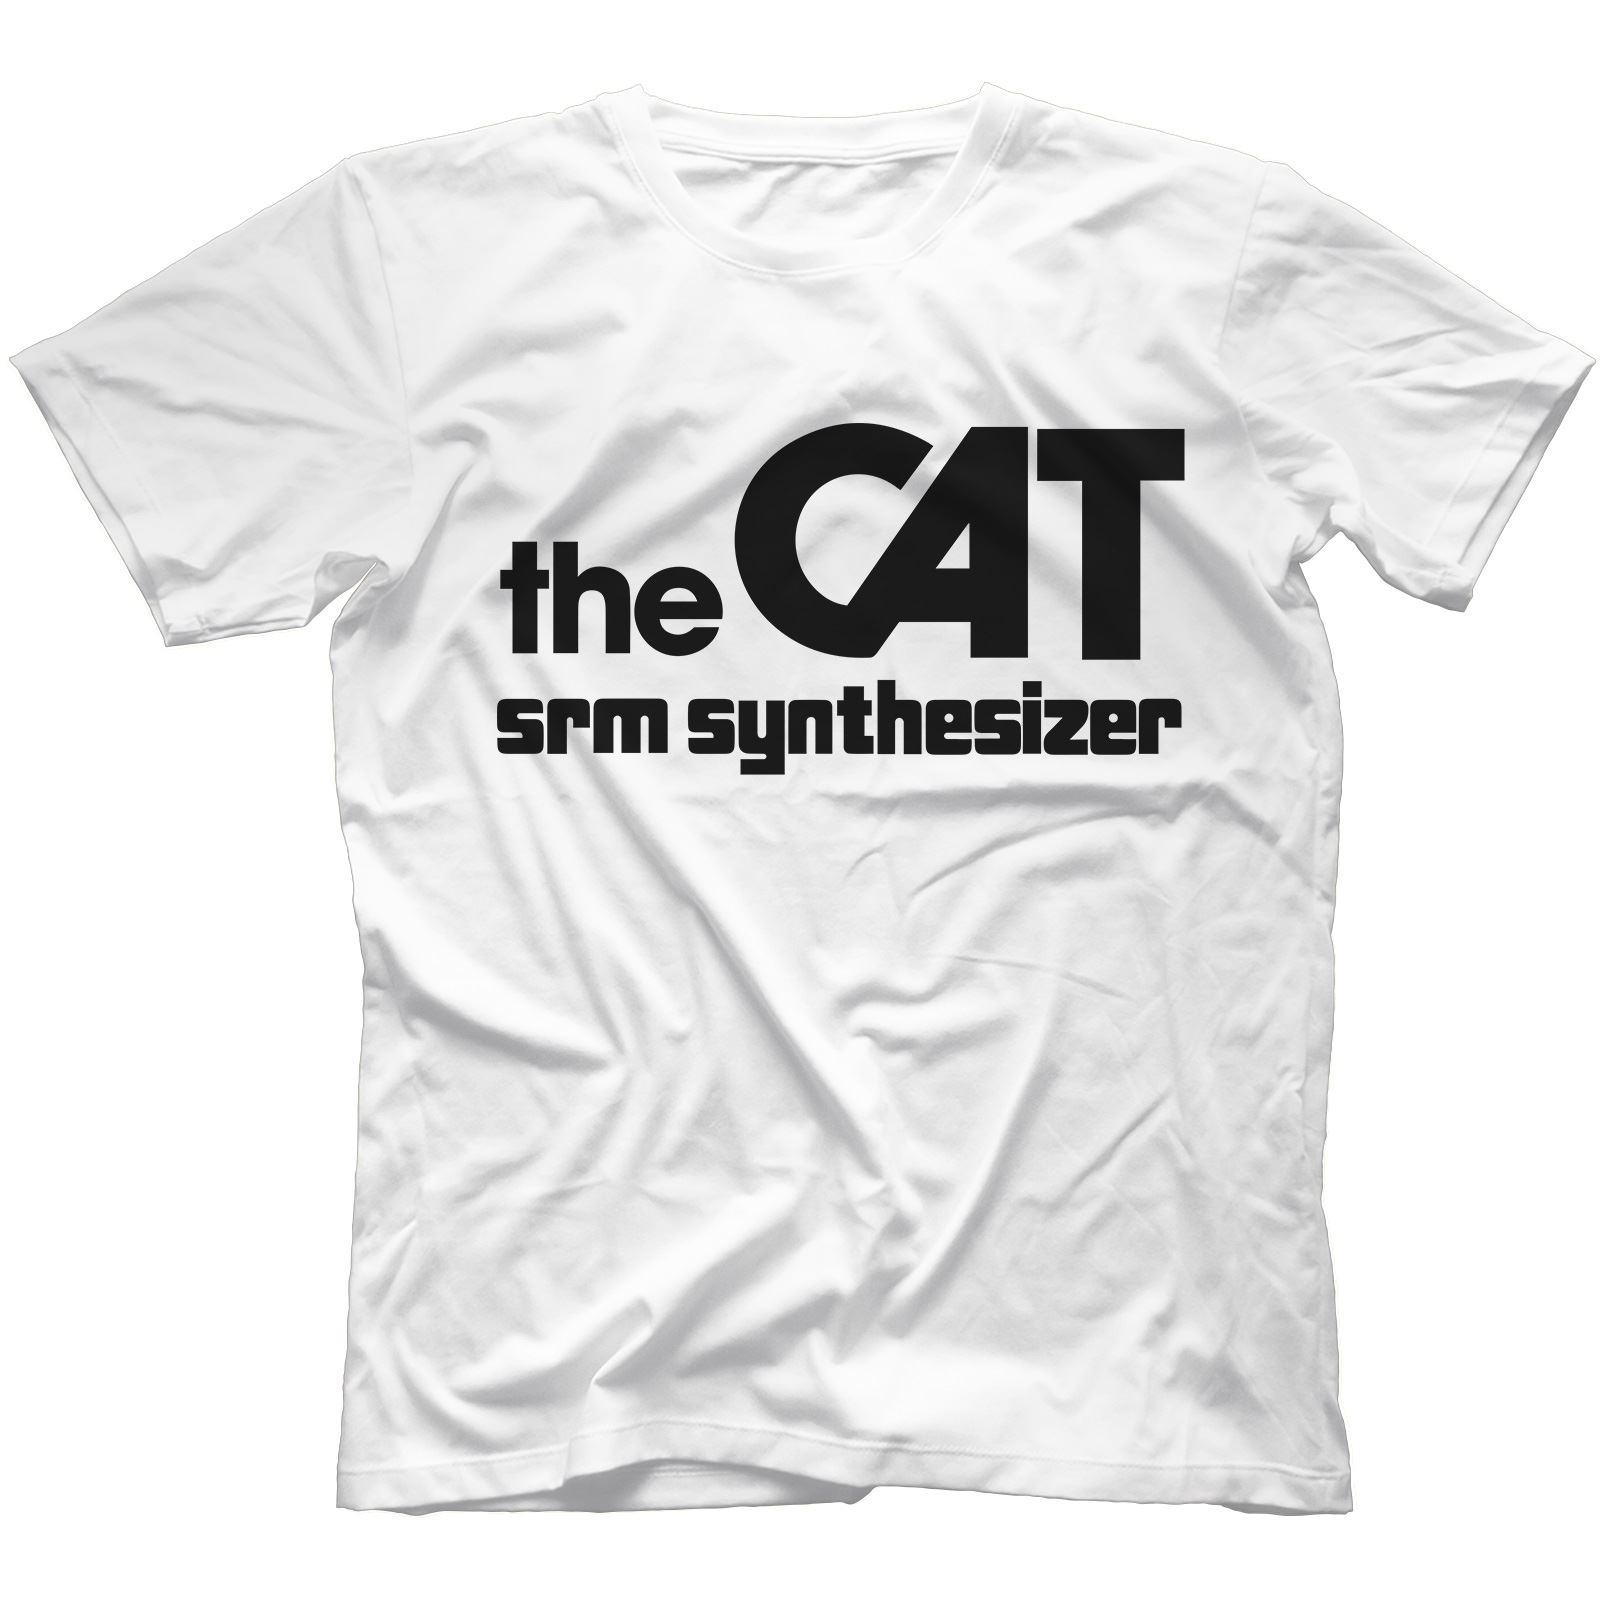 The-Cat-SRM-Synthesiser-T-Shirt-100-Cotton-Retro-Analog-Arp-Odyssey Indexbild 57